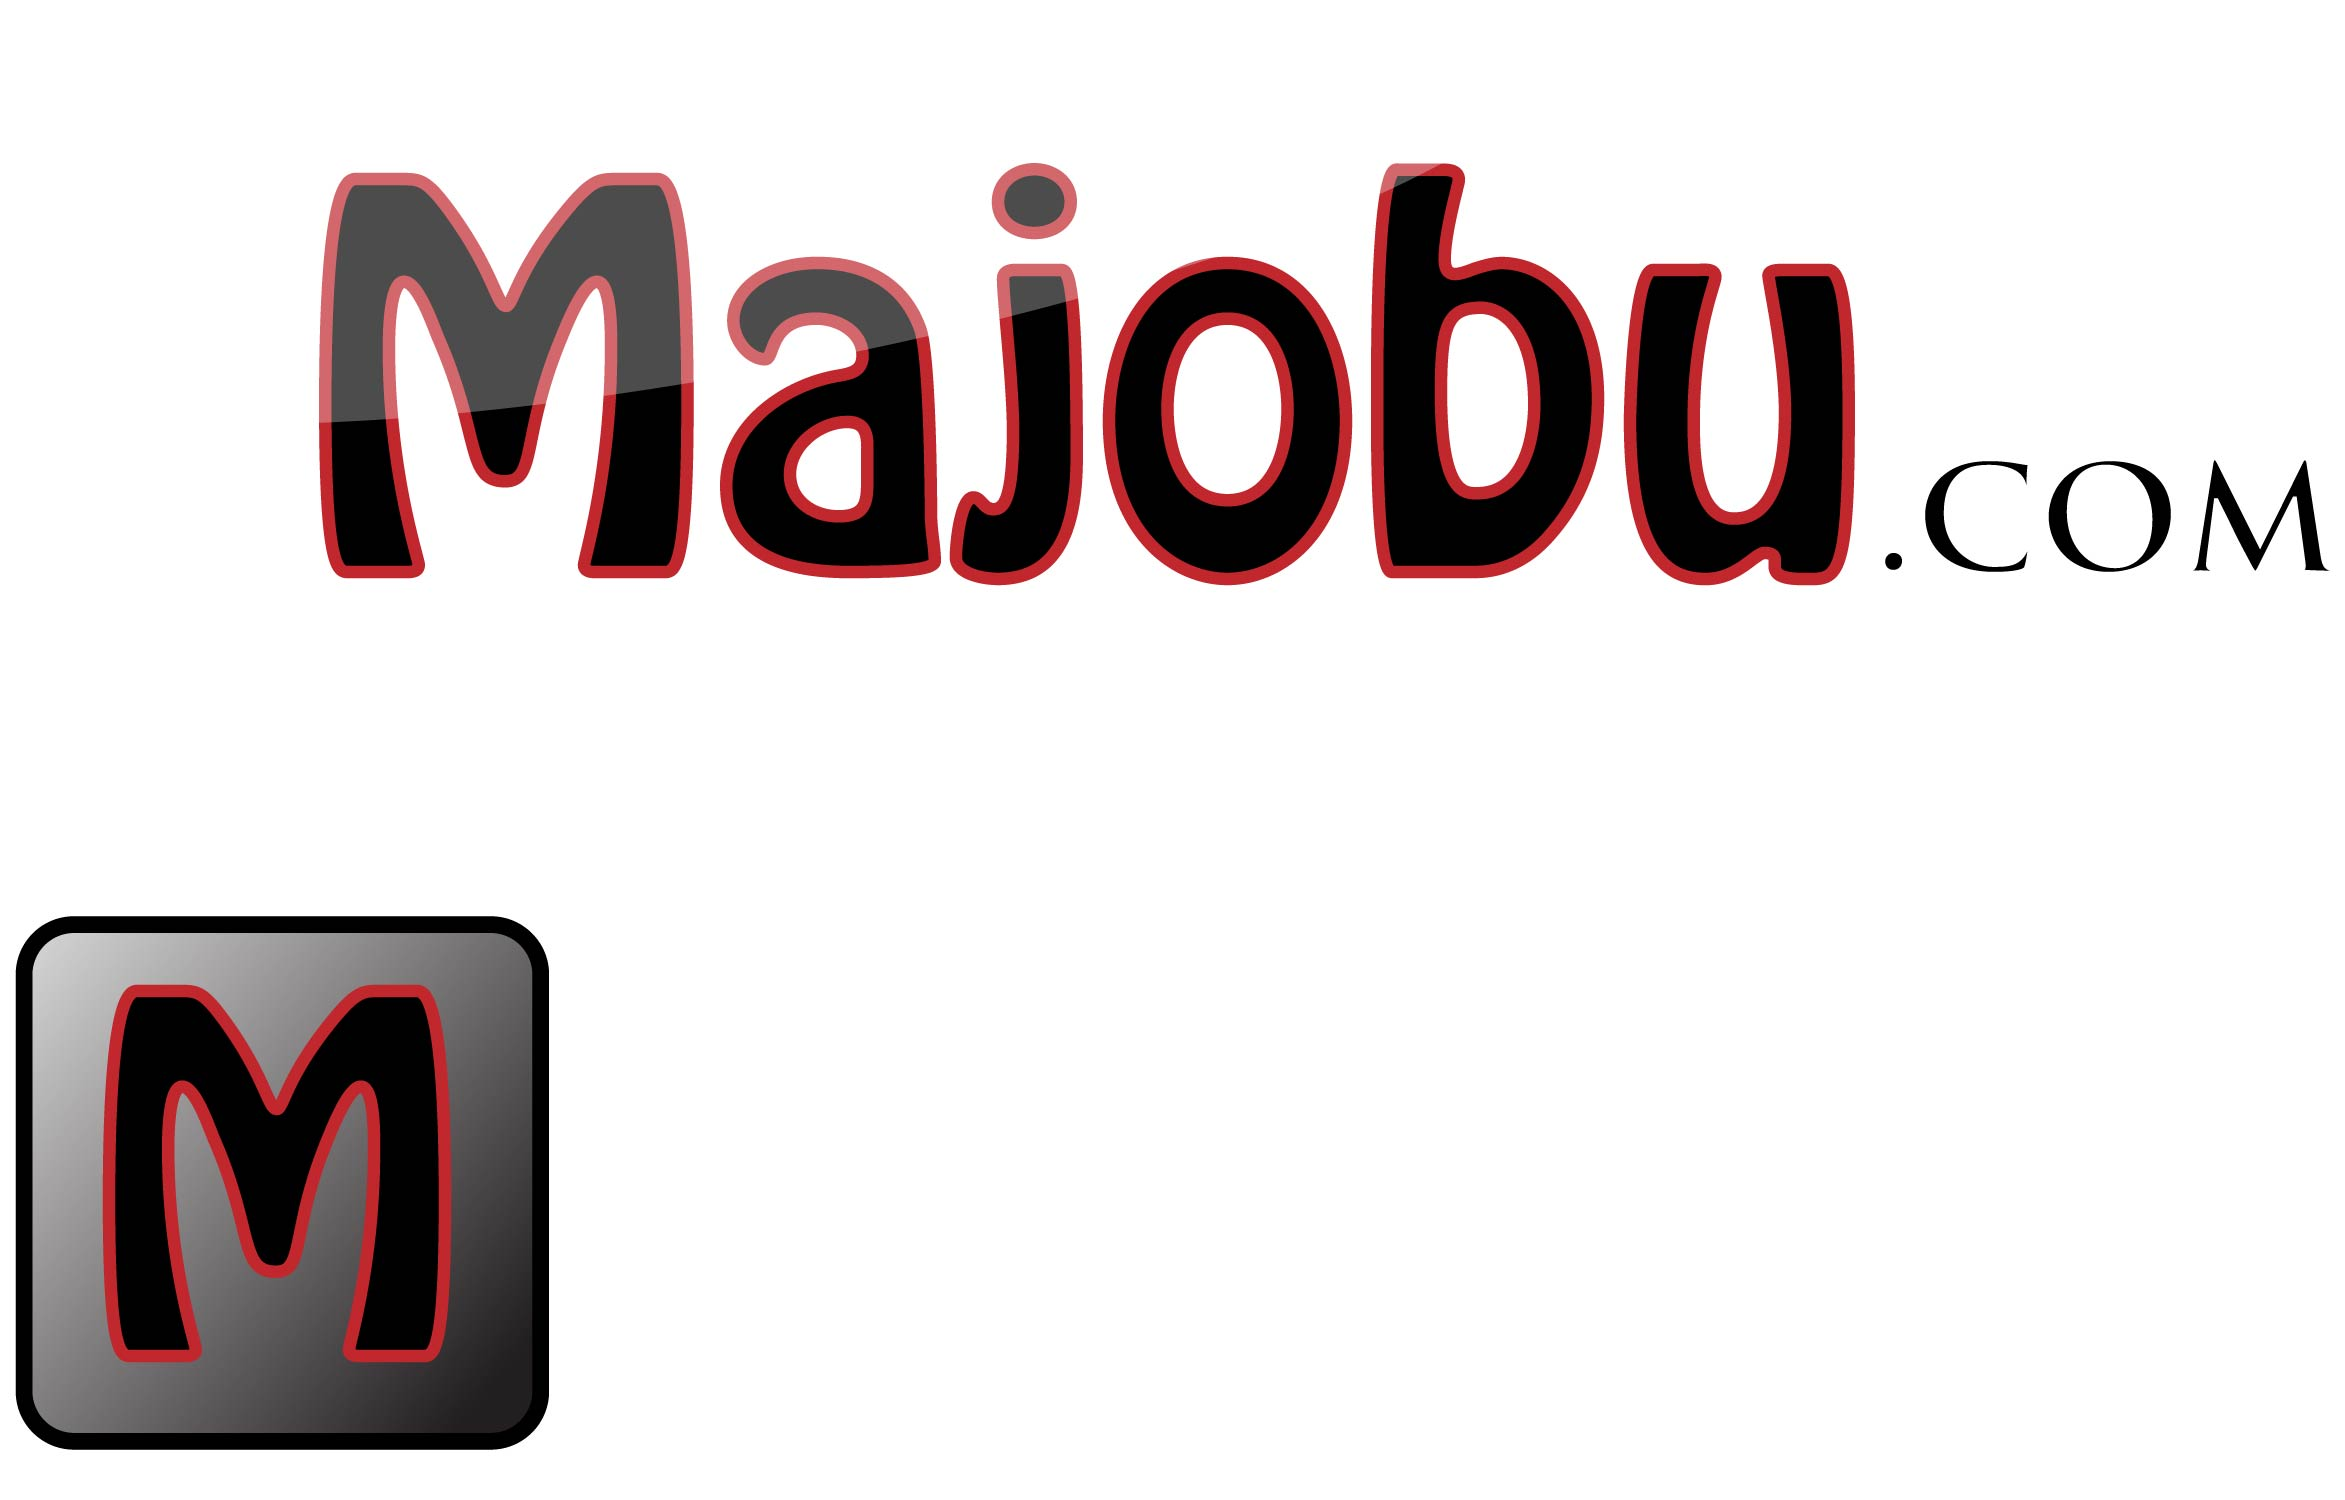 Logo Design by Andy McColm - Entry No. 6 in the Logo Design Contest Inspiring Logo Design for Majobu.